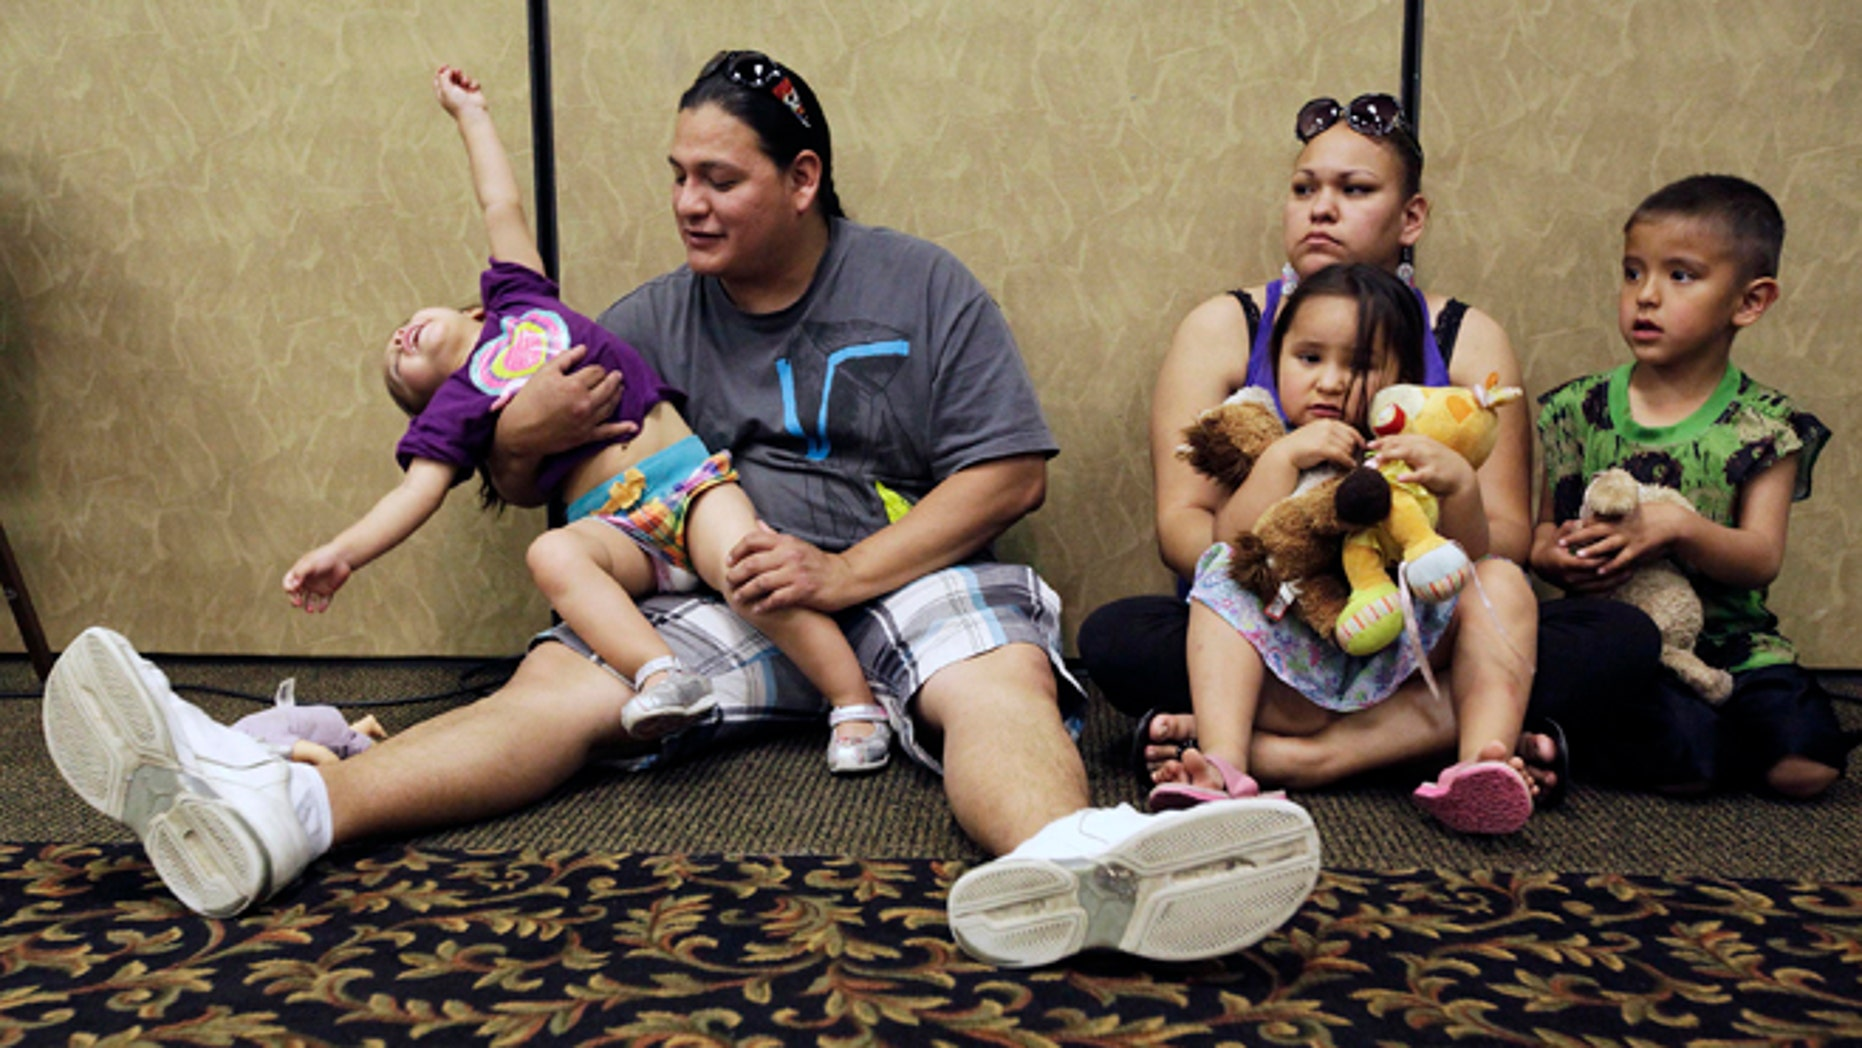 FILE - In this Wednesday, May 15, 2013 file photo, Elijah Bearsheart, left, holds his daughter, Keanala, 1, as he sits with his family, Kehala Diserly, Kiari Diserly, 3, and Yamni Pederson, 5, as they listen to testimony during the Indian Child Welfare Act summit in Rapid City, S.D. A new report on child well-being, measured by state and race, has turned an unflattering spotlight on some places not used to being at the bottom of such lists, including Wisconsin, with a worst-in-the-nation ranking for its black children, and South Dakota, with abysmal results for its American Indian youth. The report was released Tuesday, April 1, 2014 by the Annie E. Casey Foundation. (AP Photo/Rapid City Journal, Benjamin Brayfield)